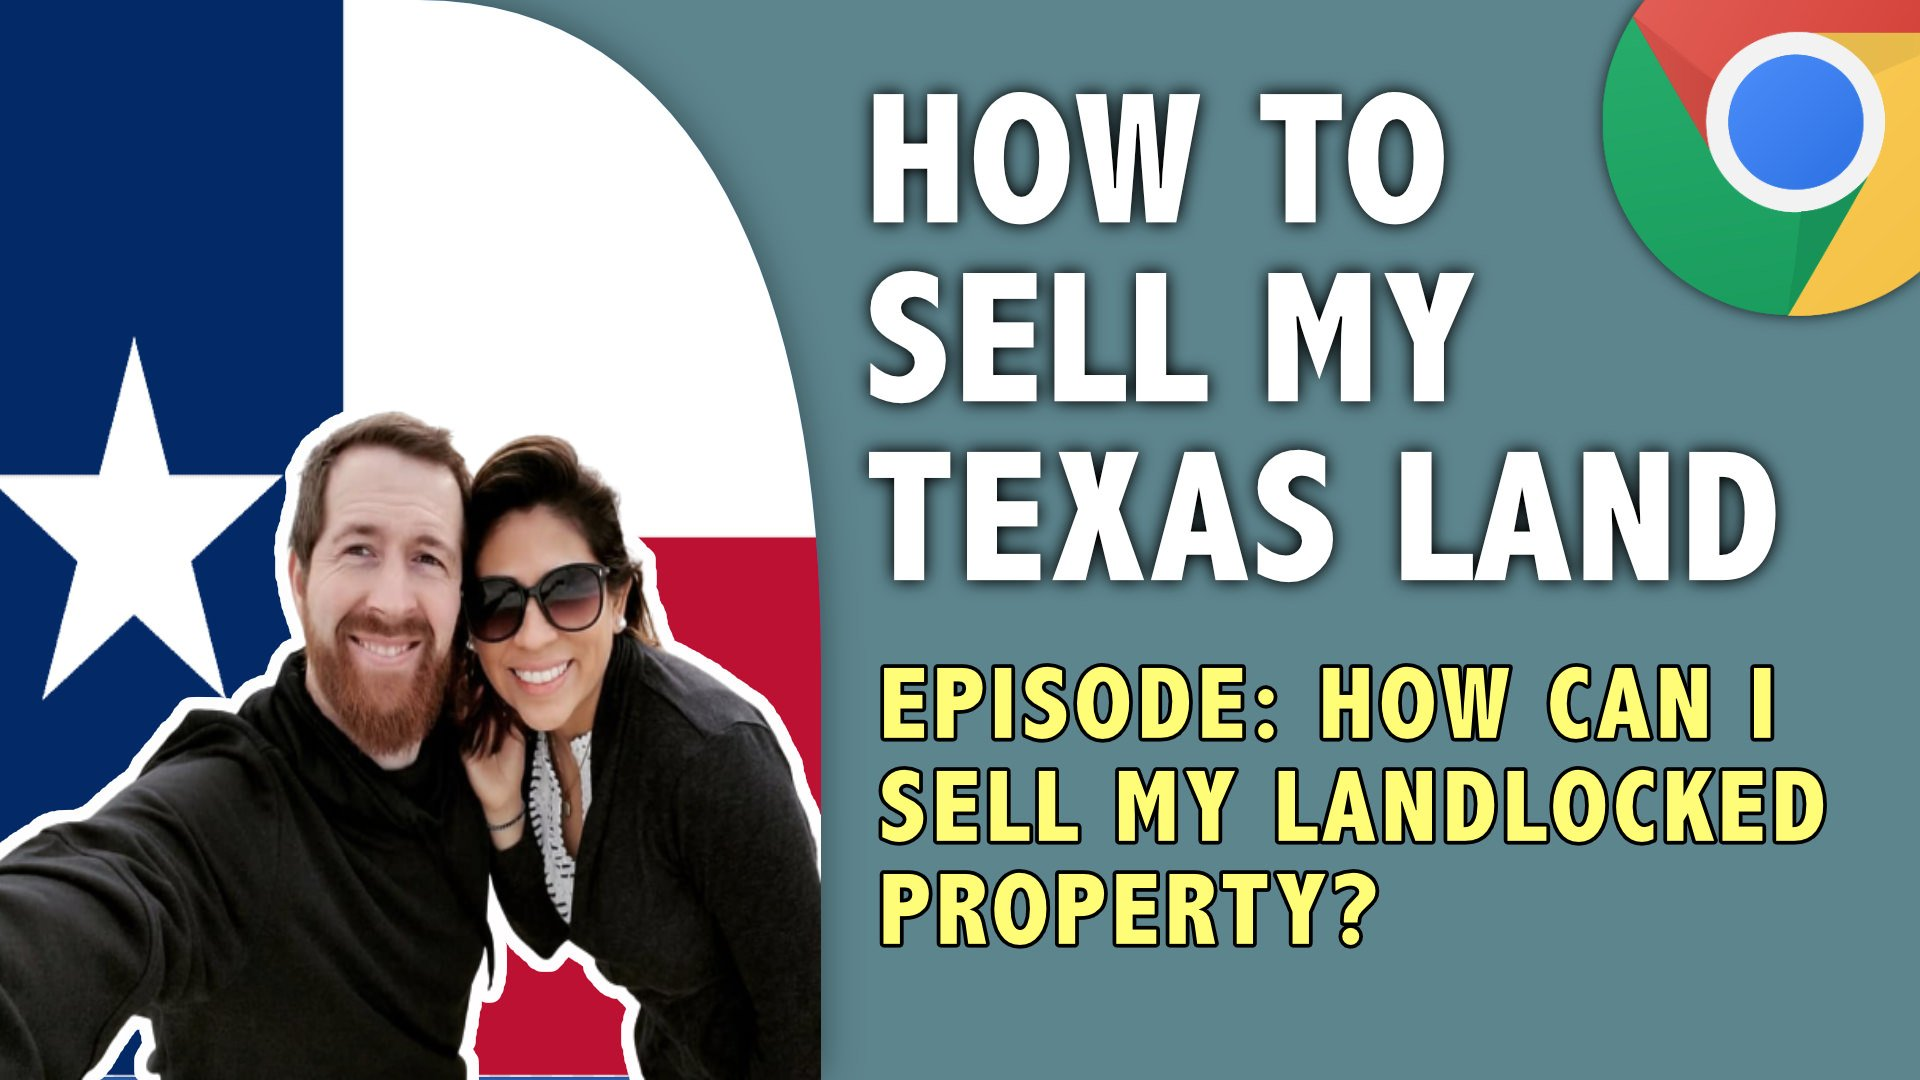 HOW CAN I SELL MY LANDLOCKED PROPERTY IN TEXAS, Checklands